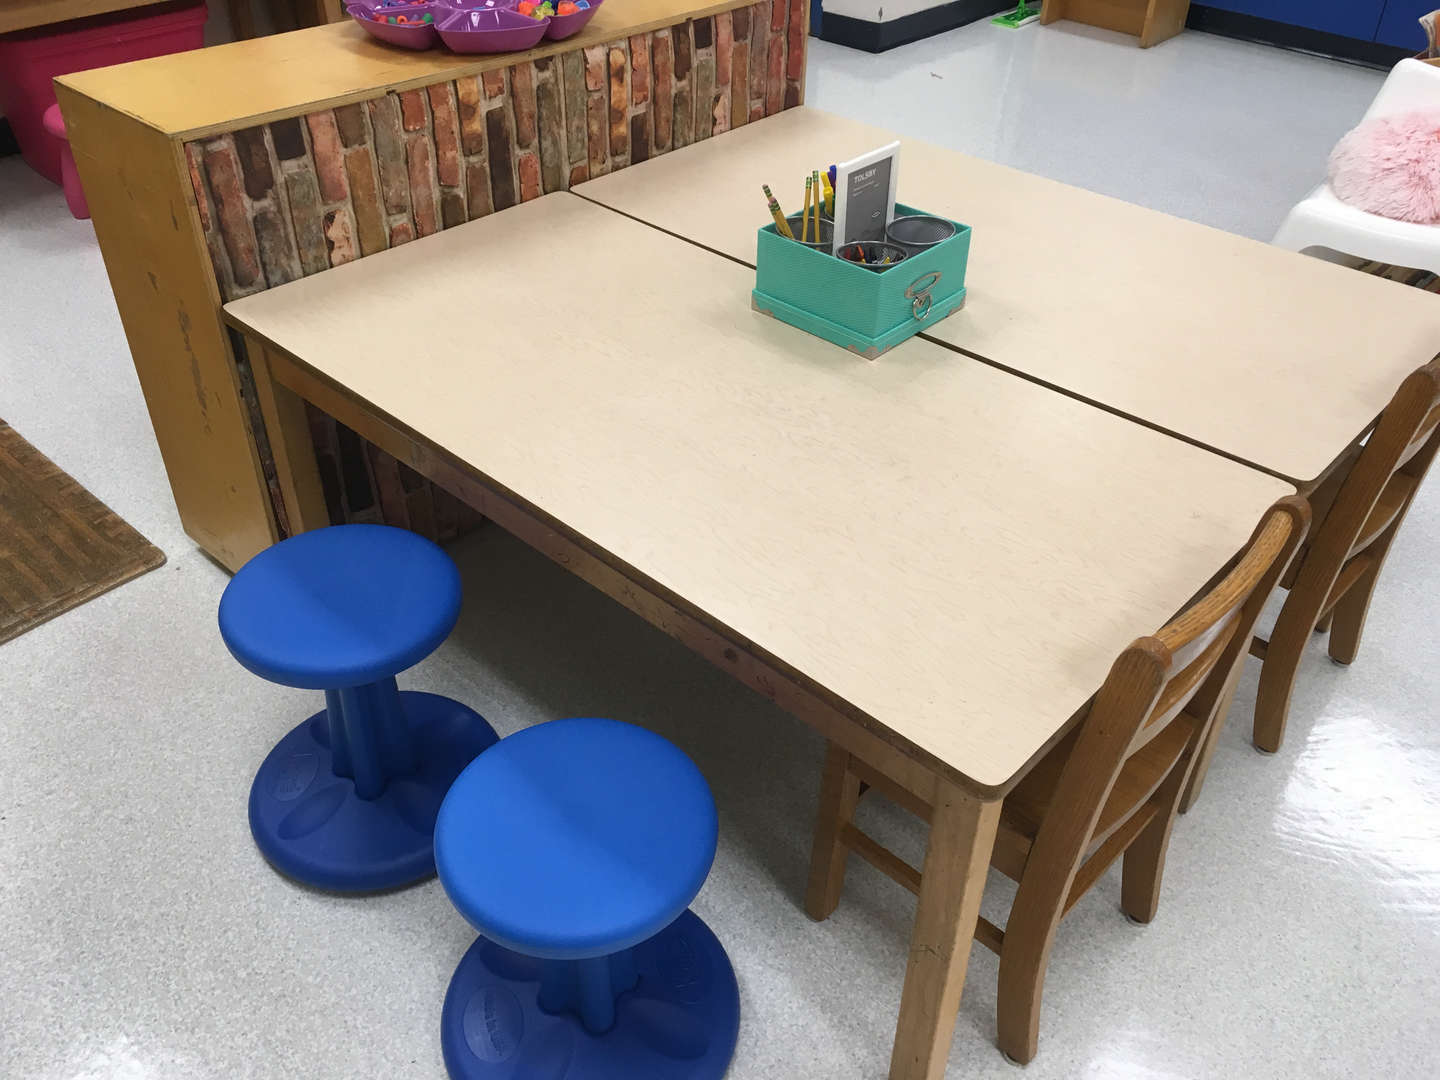 Flexible seating - swivel stools